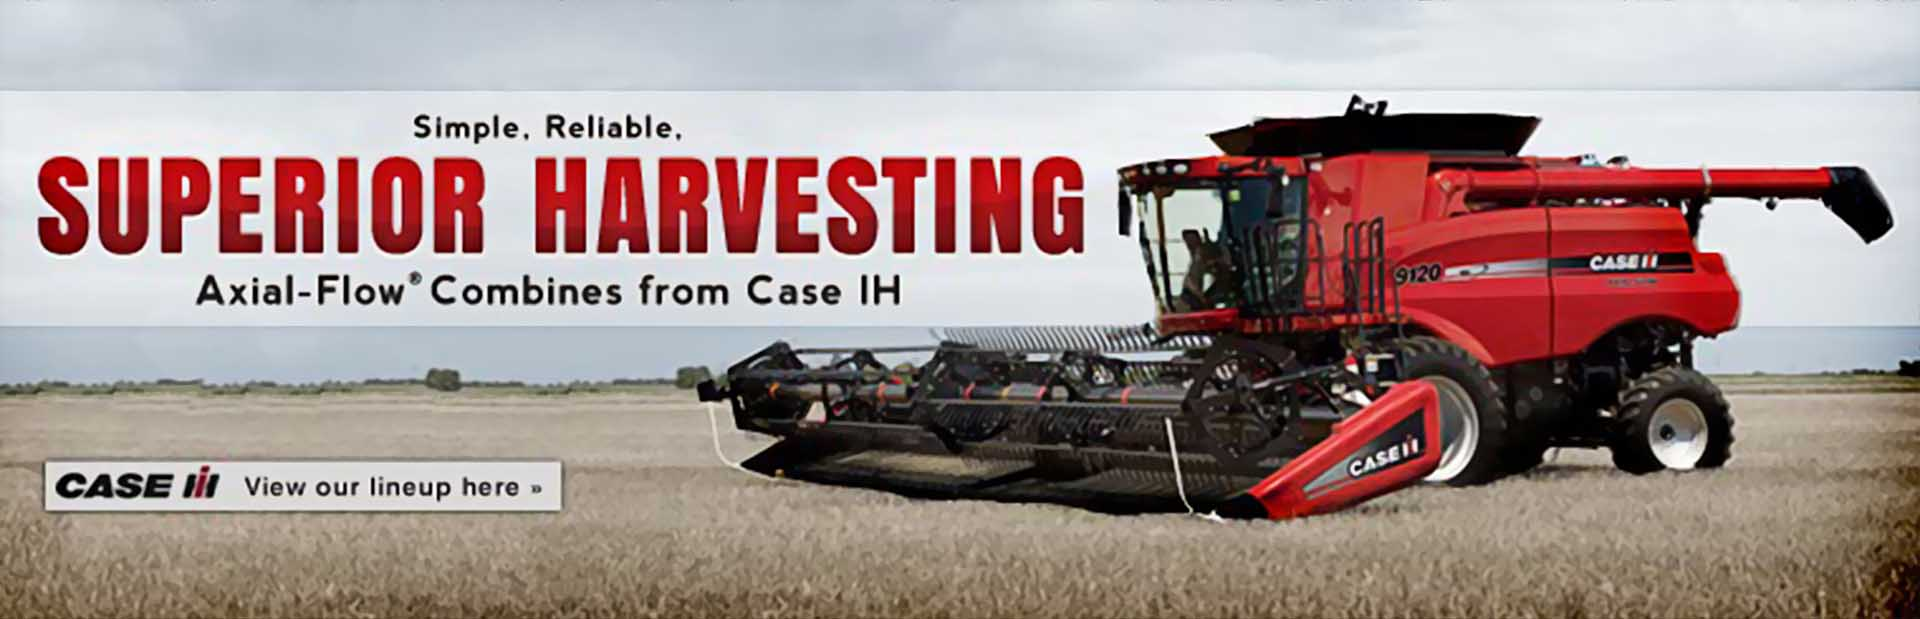 Click here to view Axial-Flow® combines from Case IH.